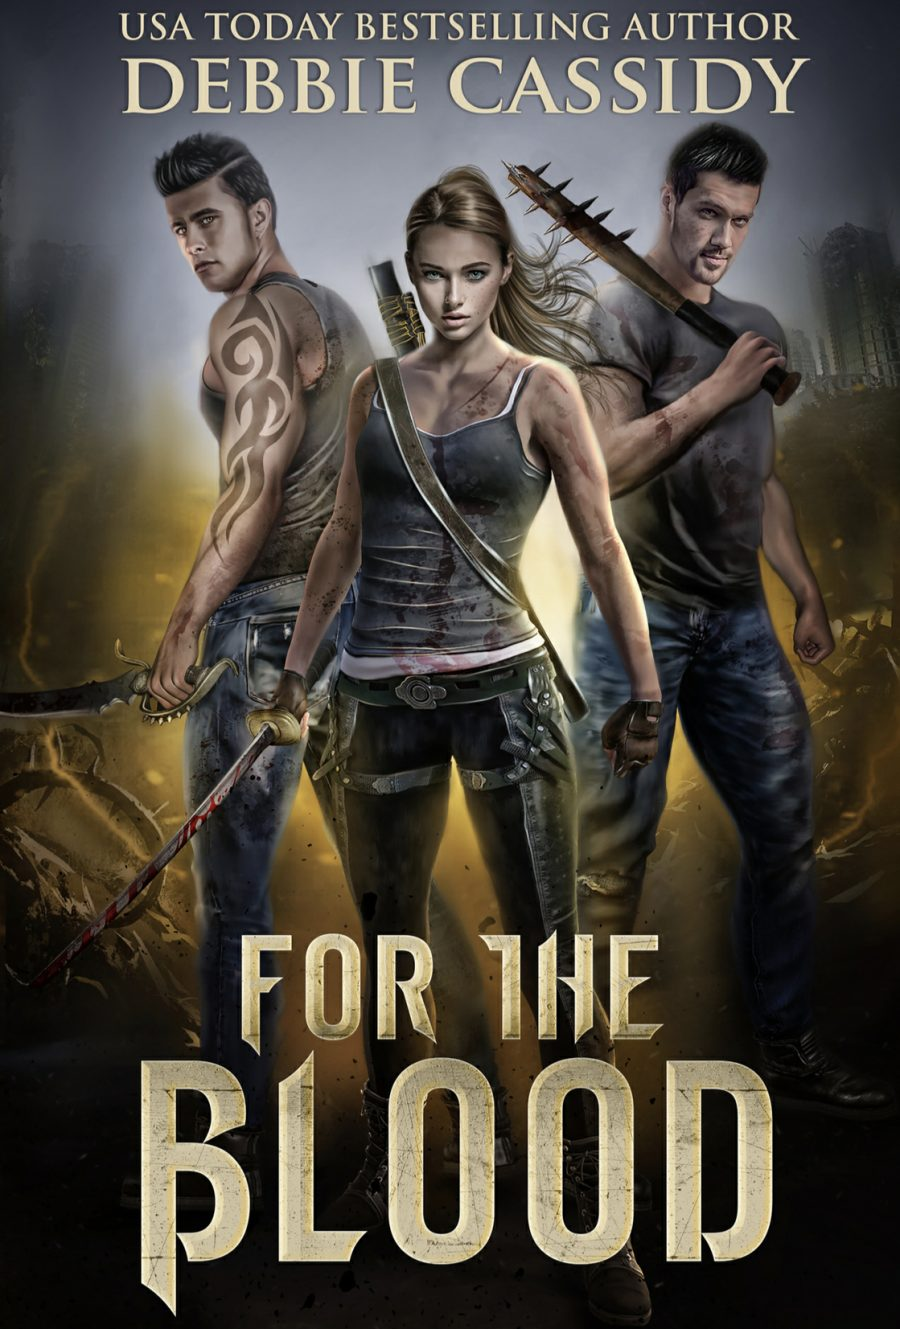 For the Blood by Debbie Cassidy - A Book Review #BookReview #Review #UrbanFantasy #UF #RH #ReverseHarem #WhyChoose #Vampires #4Stars #KindleUnlimited #KU